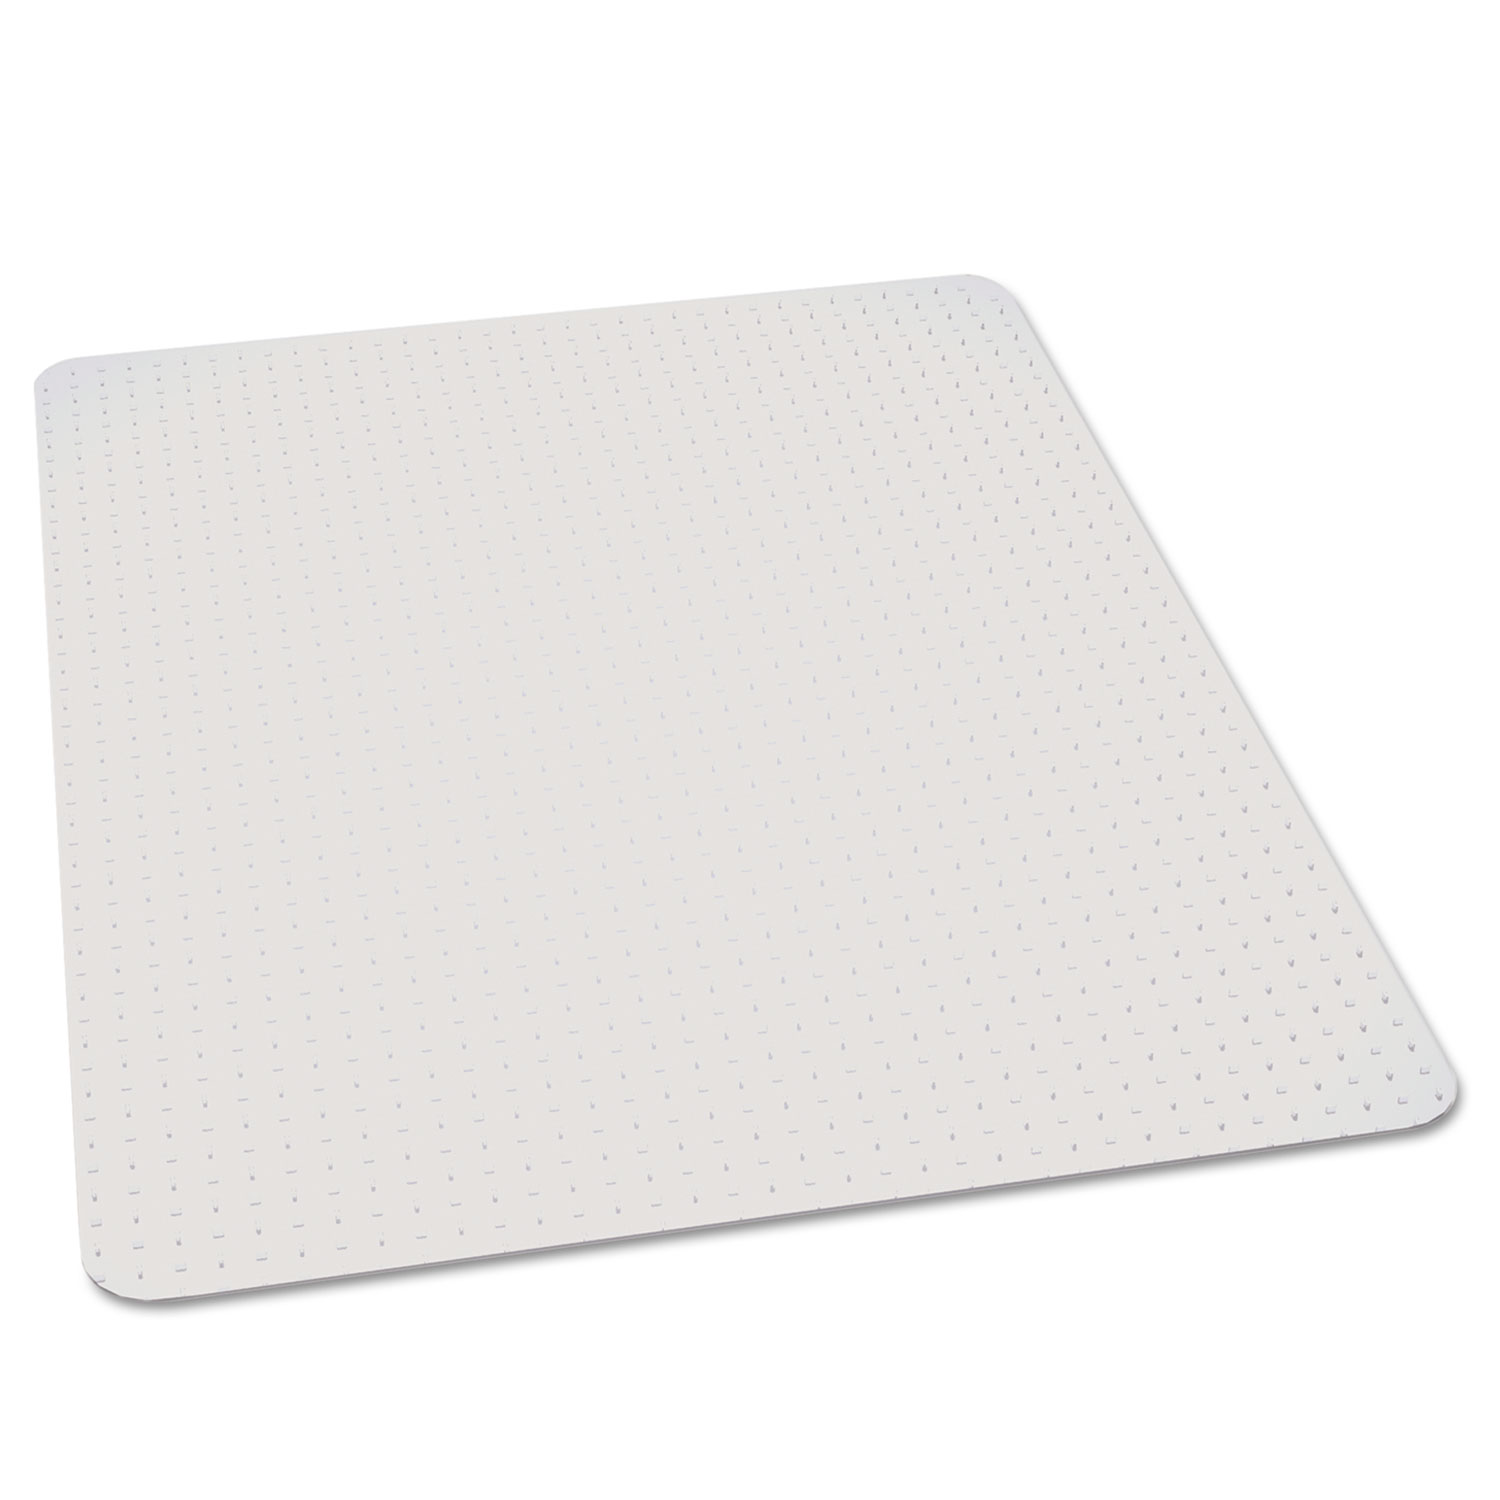 Esr Es Robbins Everlife Chair Mats For Medium Pile